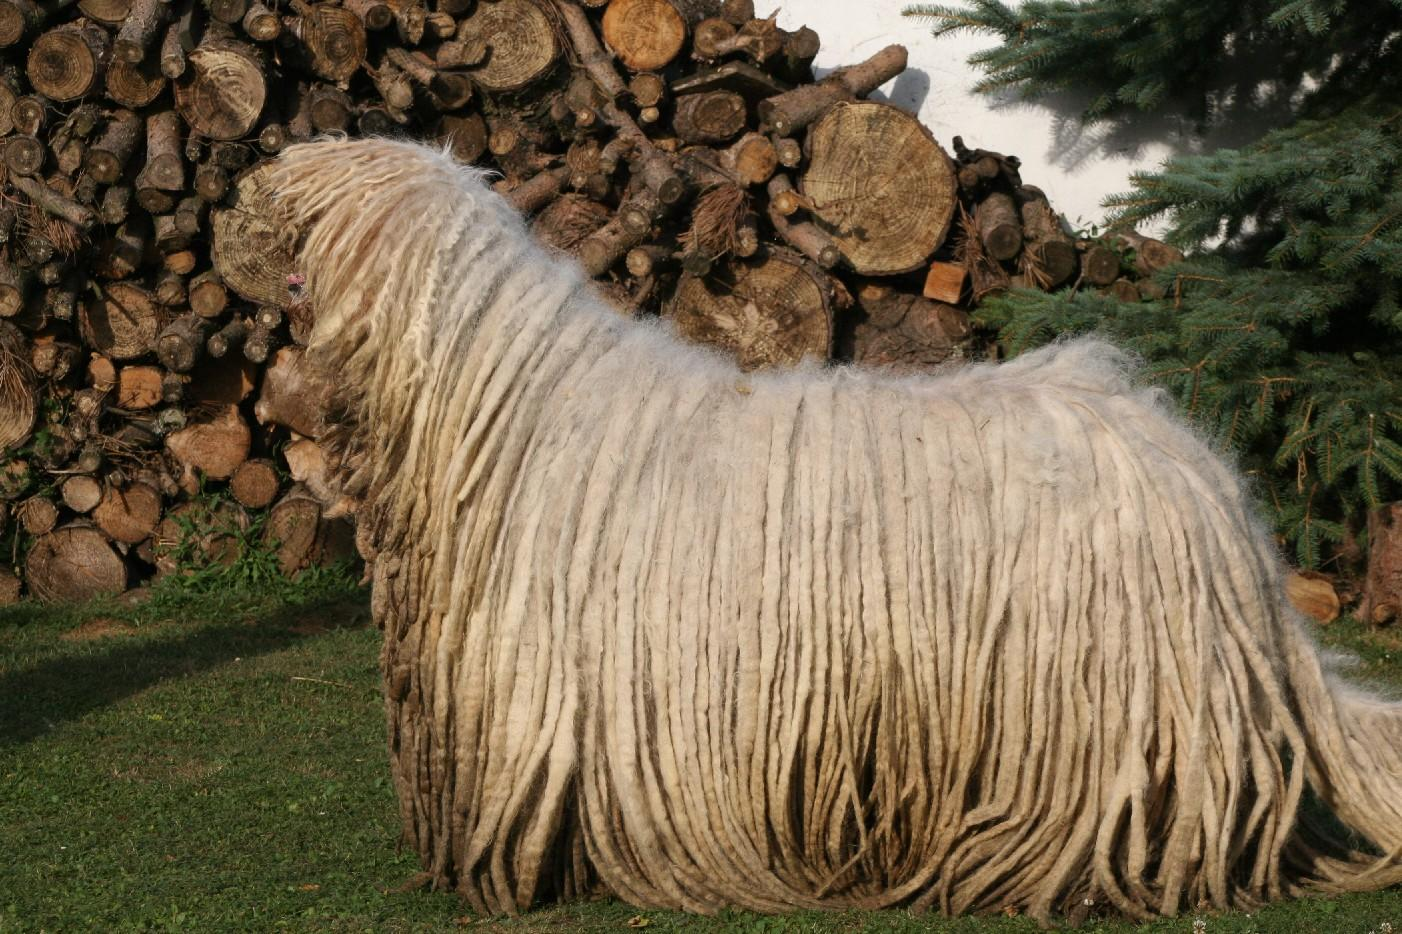 Watching Komondor dog wallpaper